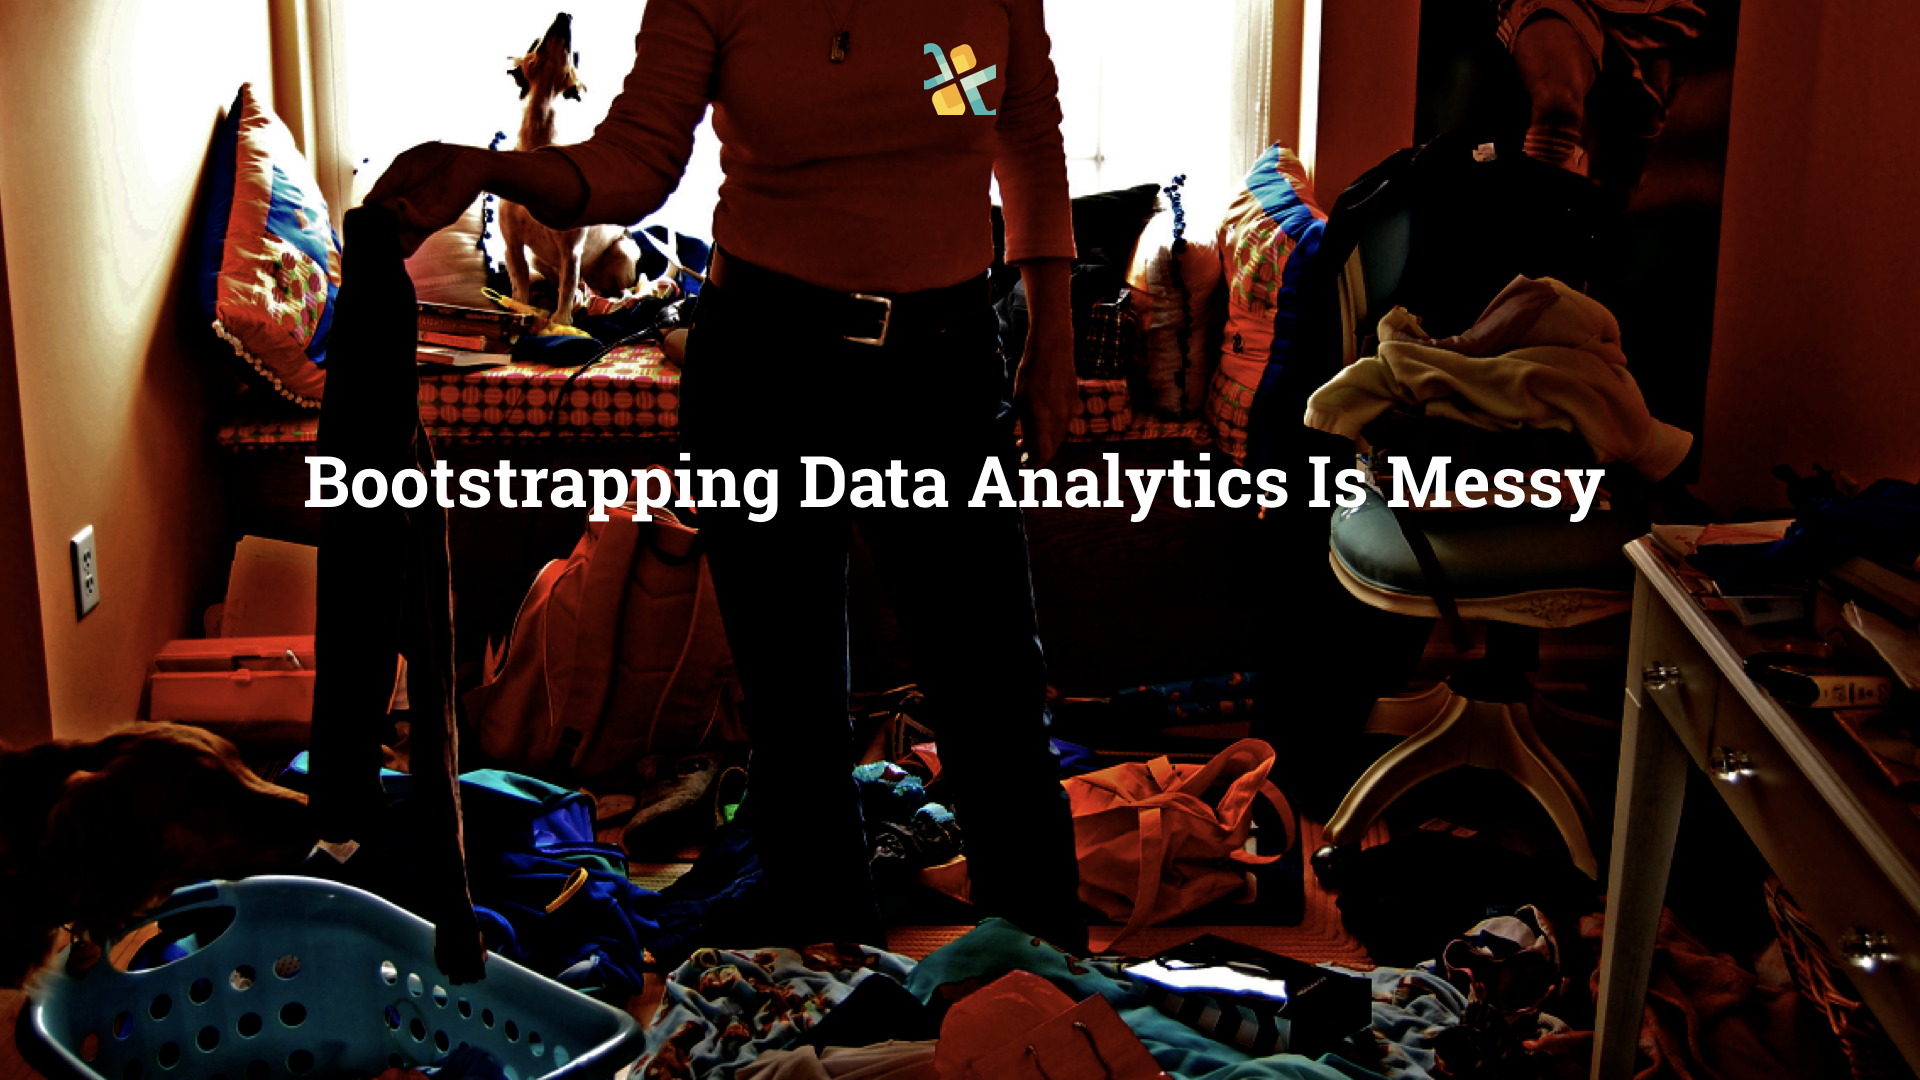 Bootstrapping Your Data Analytics Efforts Can Be Messy